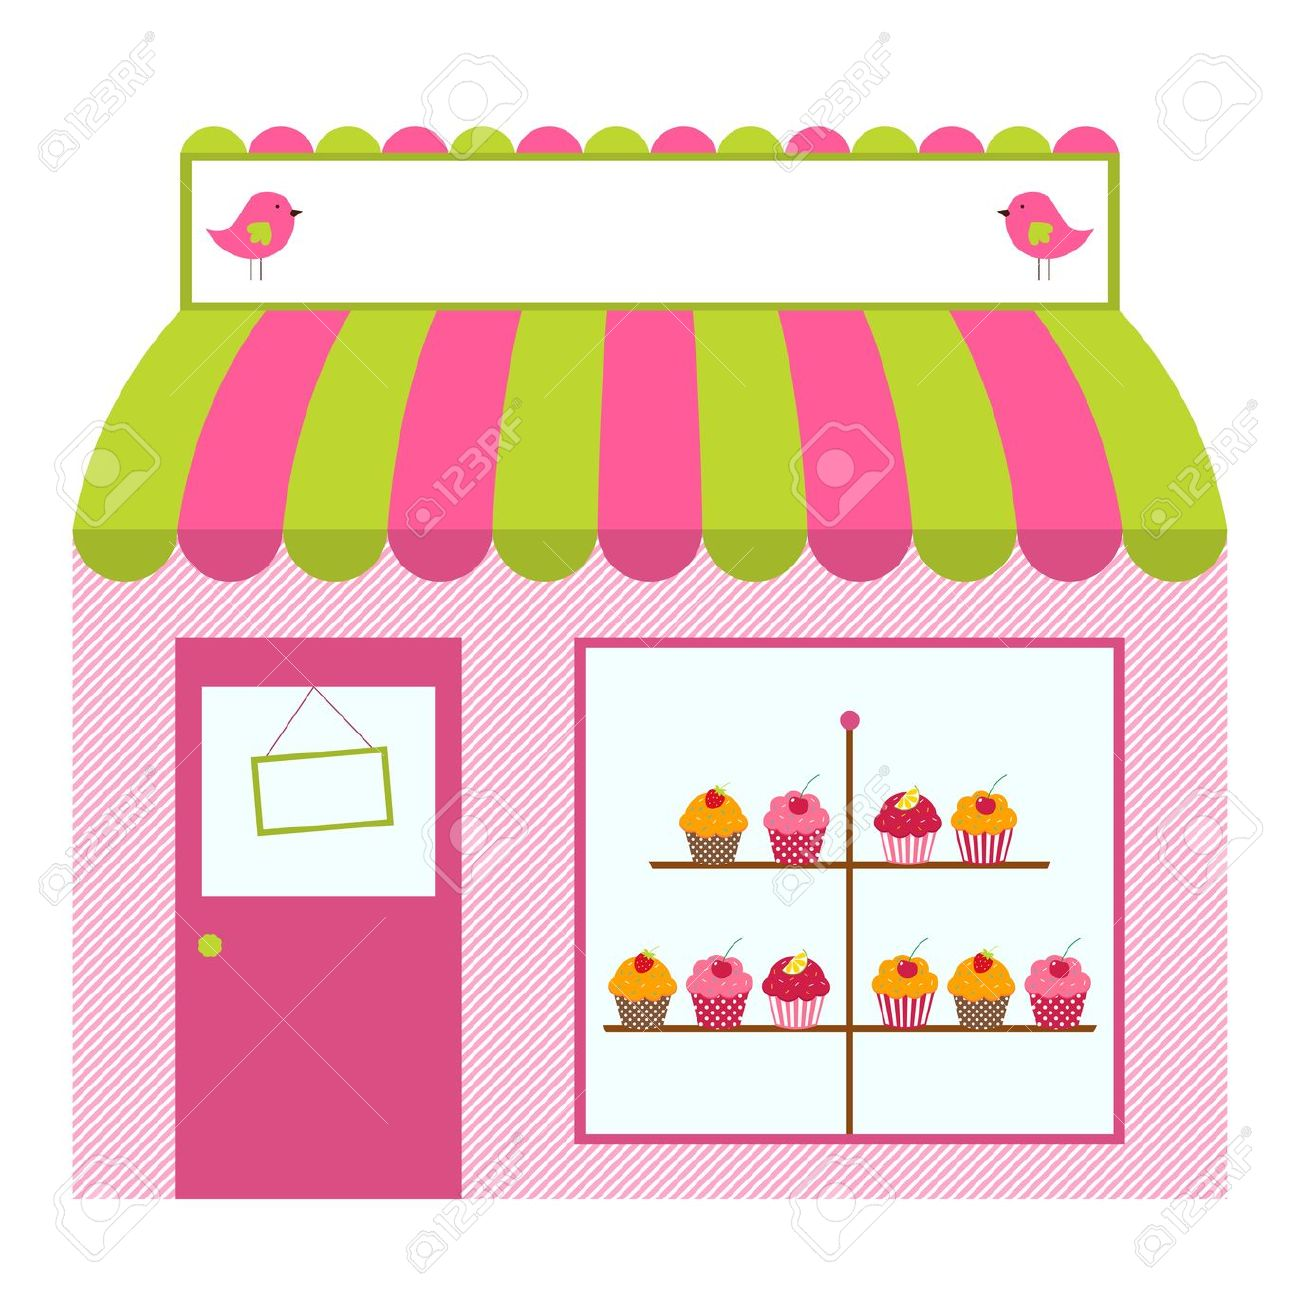 Pastry shops clipart - Clipground (1300 x 1300 Pixel)